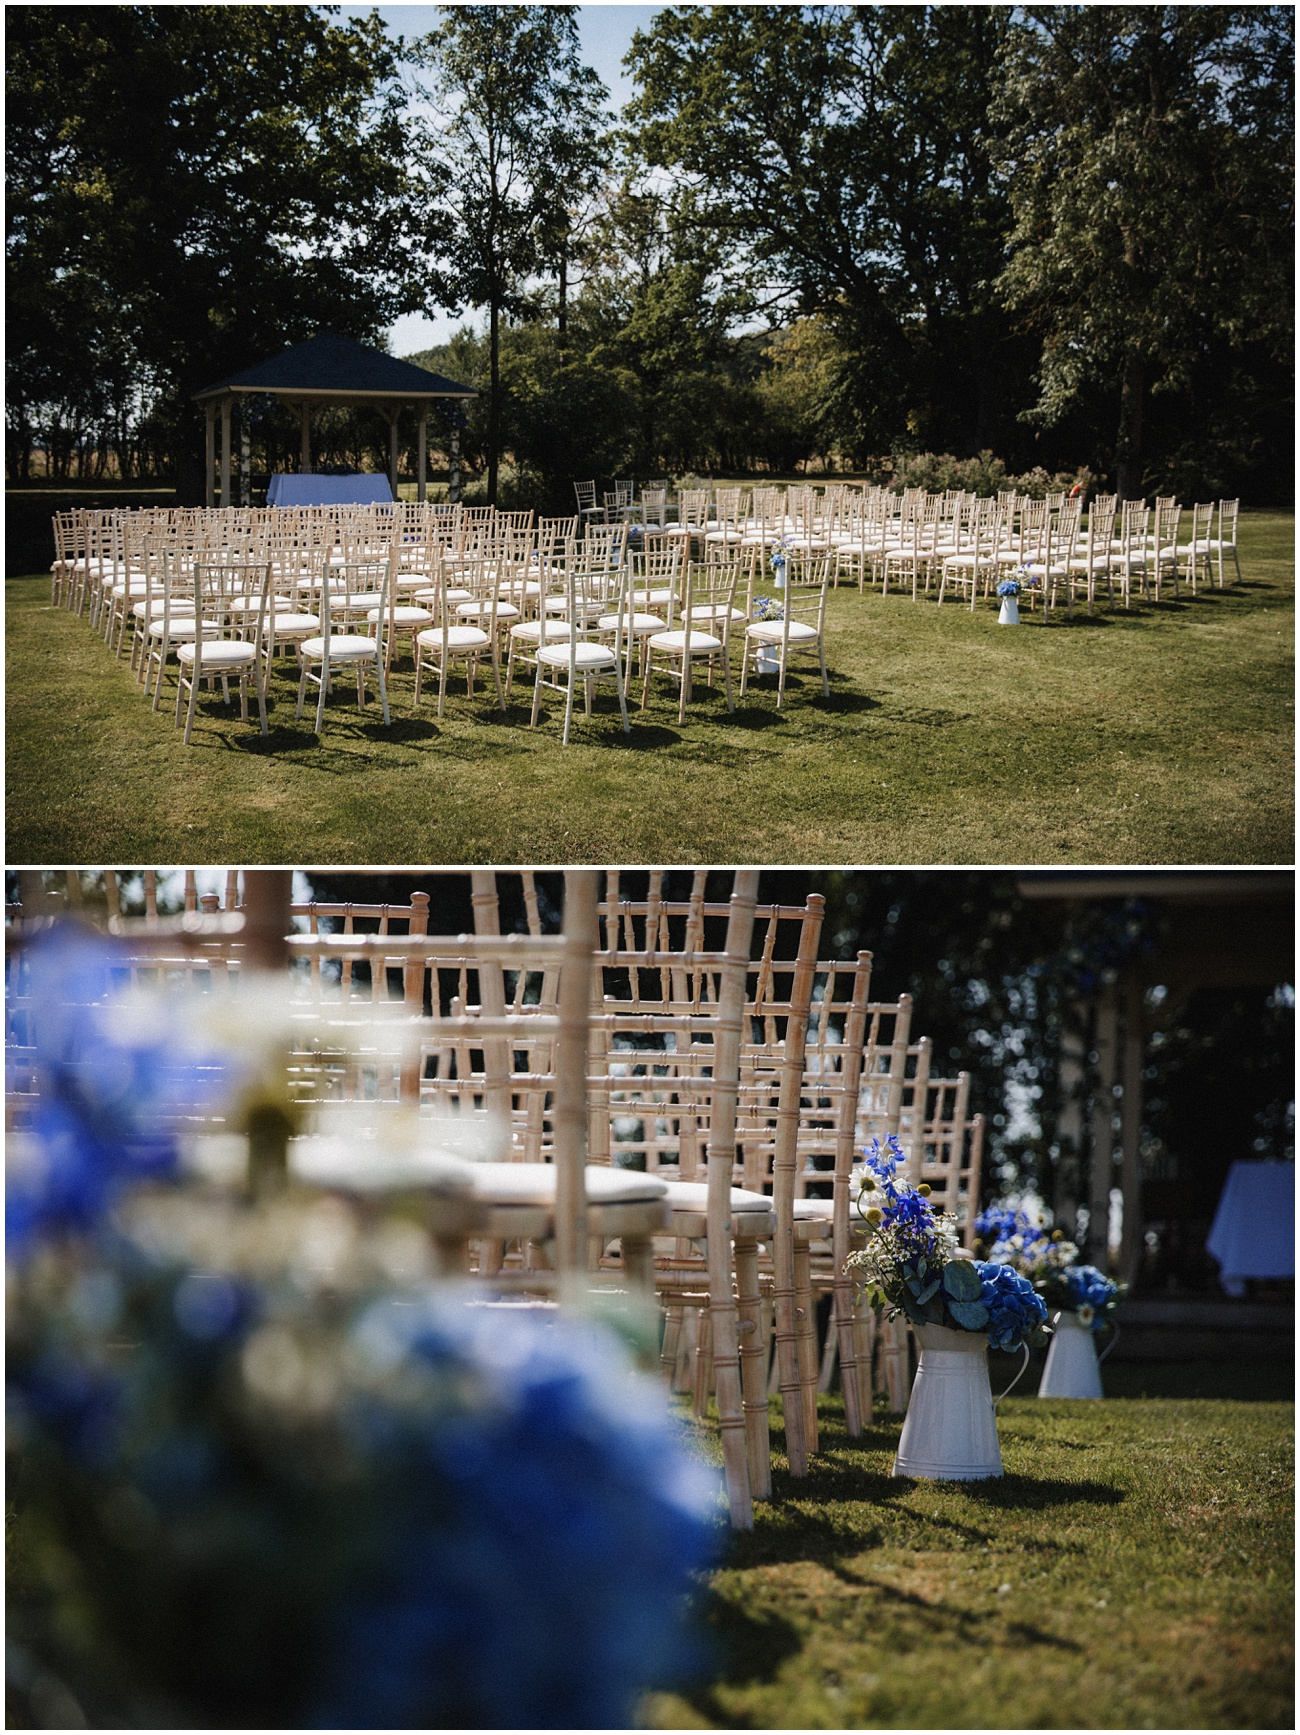 The wedding chairs lined in front of the pagoda ready for the outdoor wedding